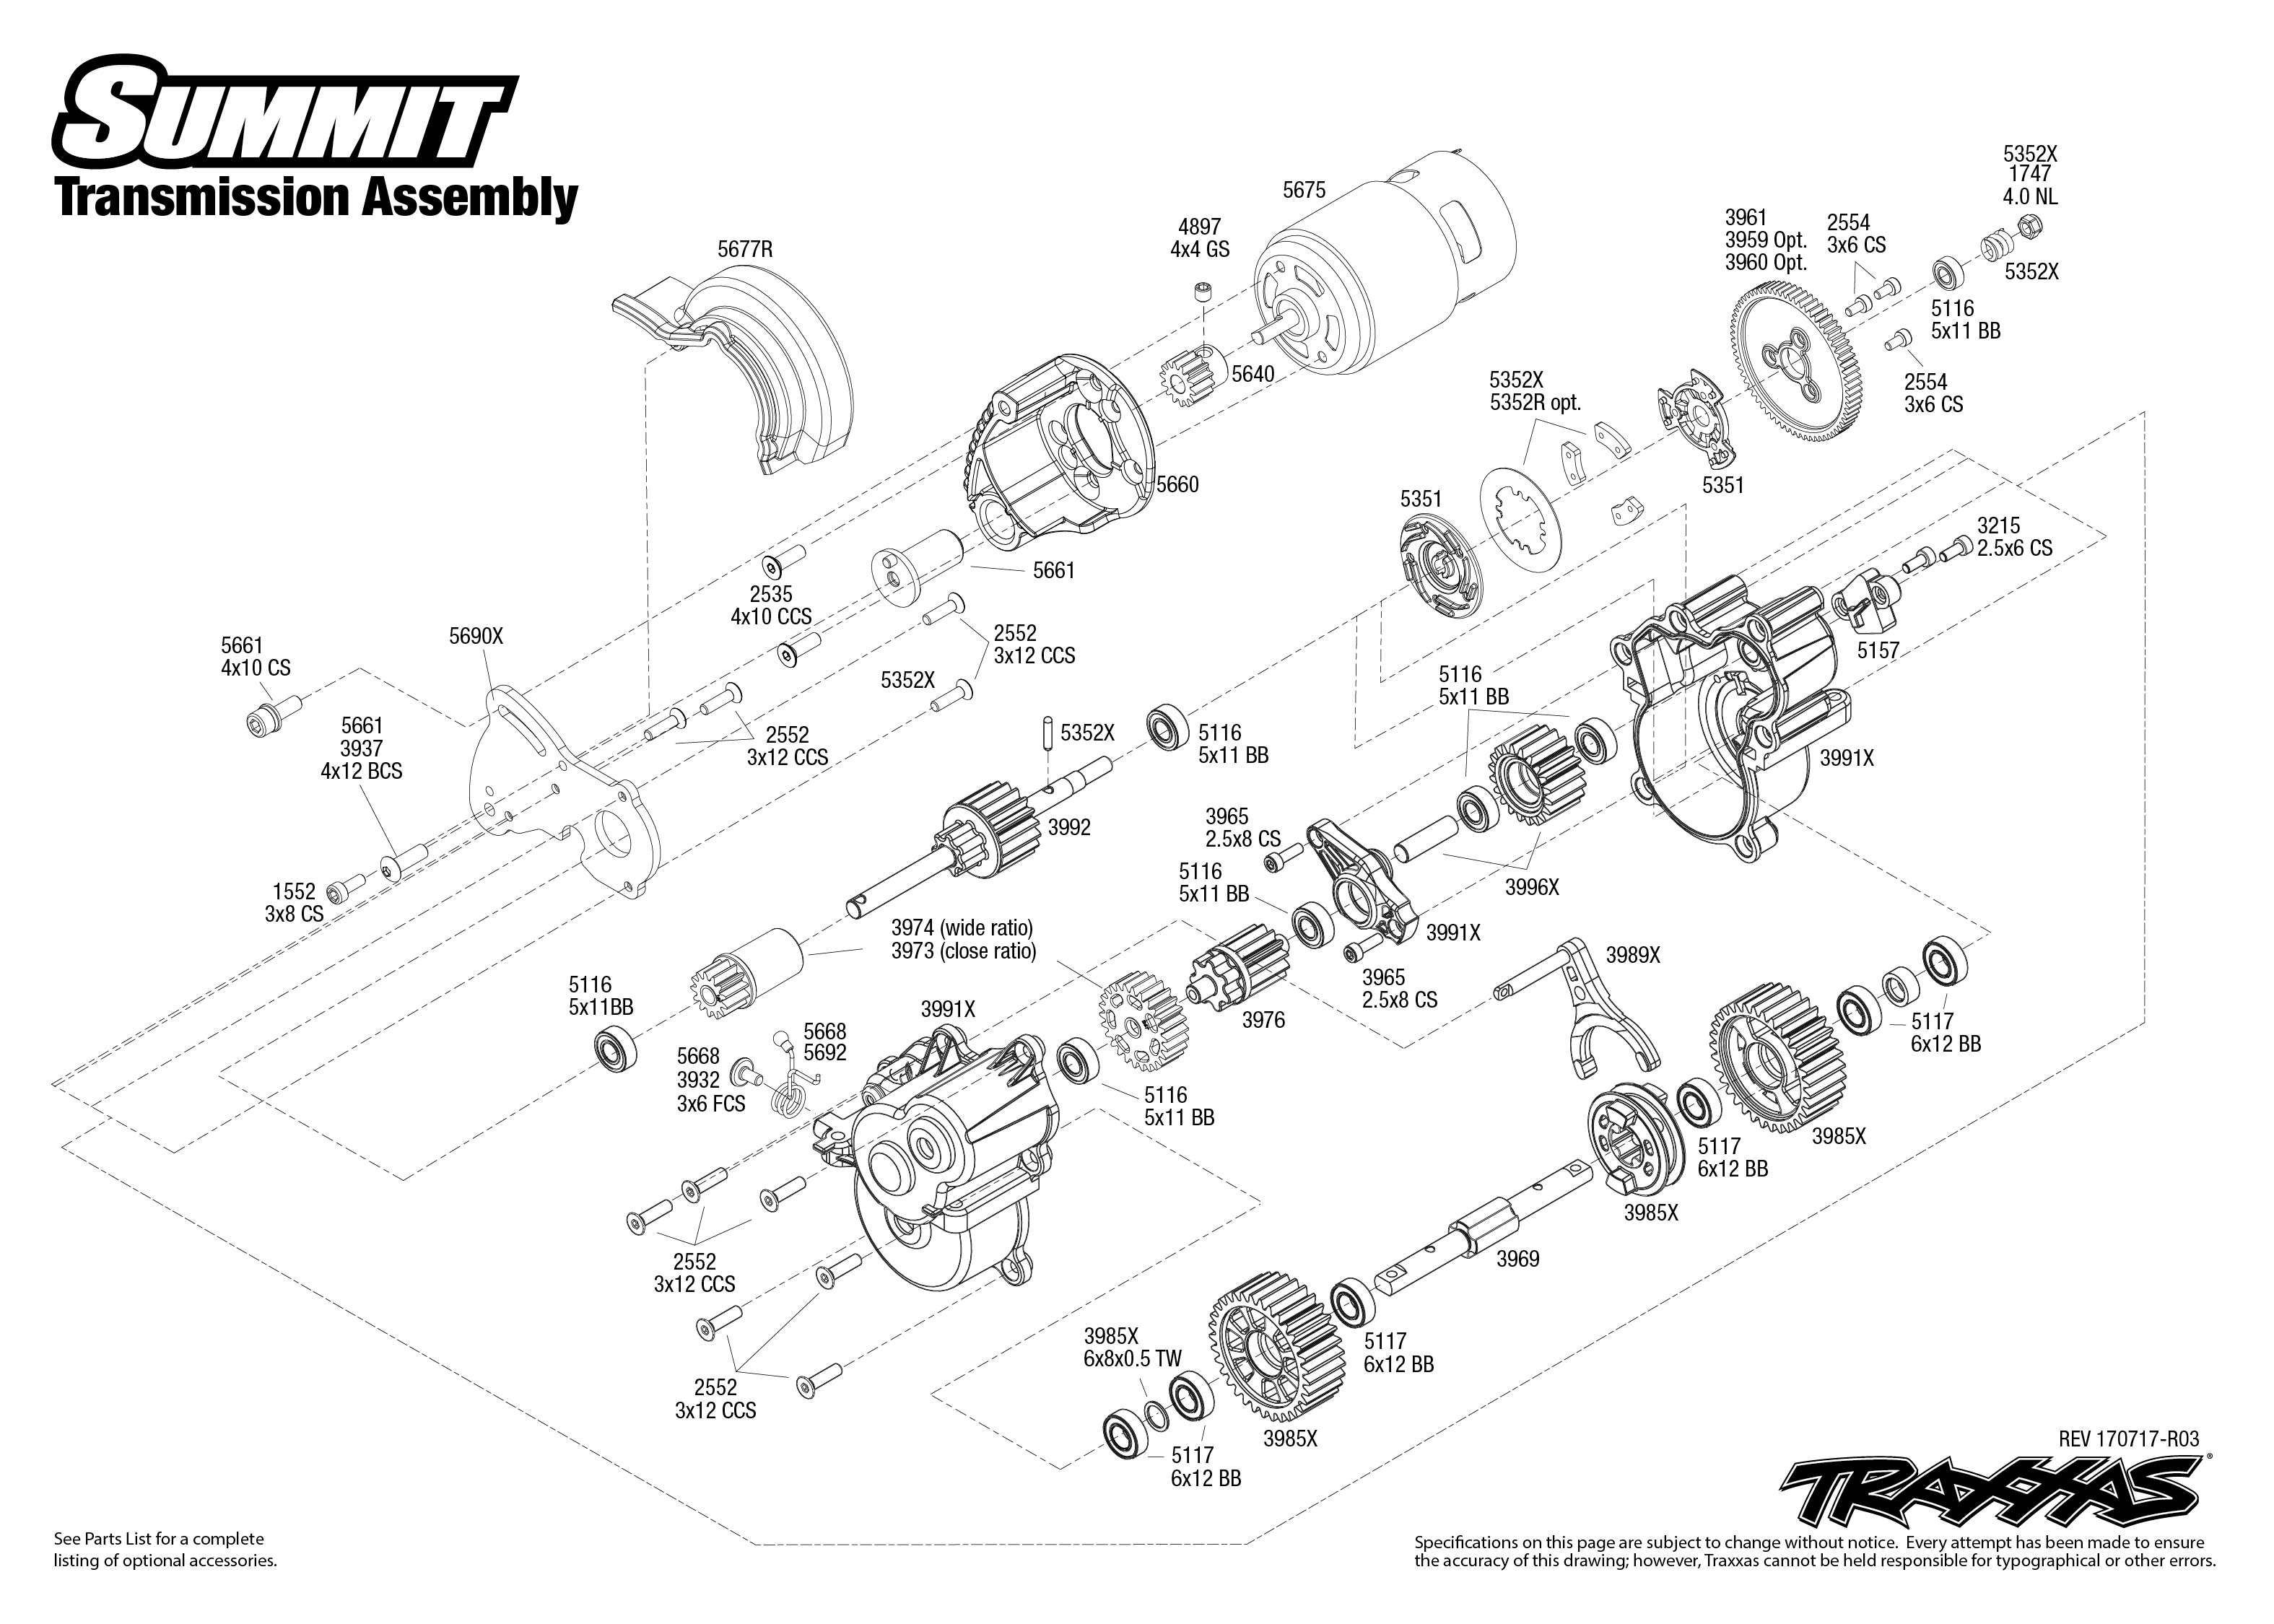 Summit 56076 1 Transmission Assembly Exploded View Traxxas